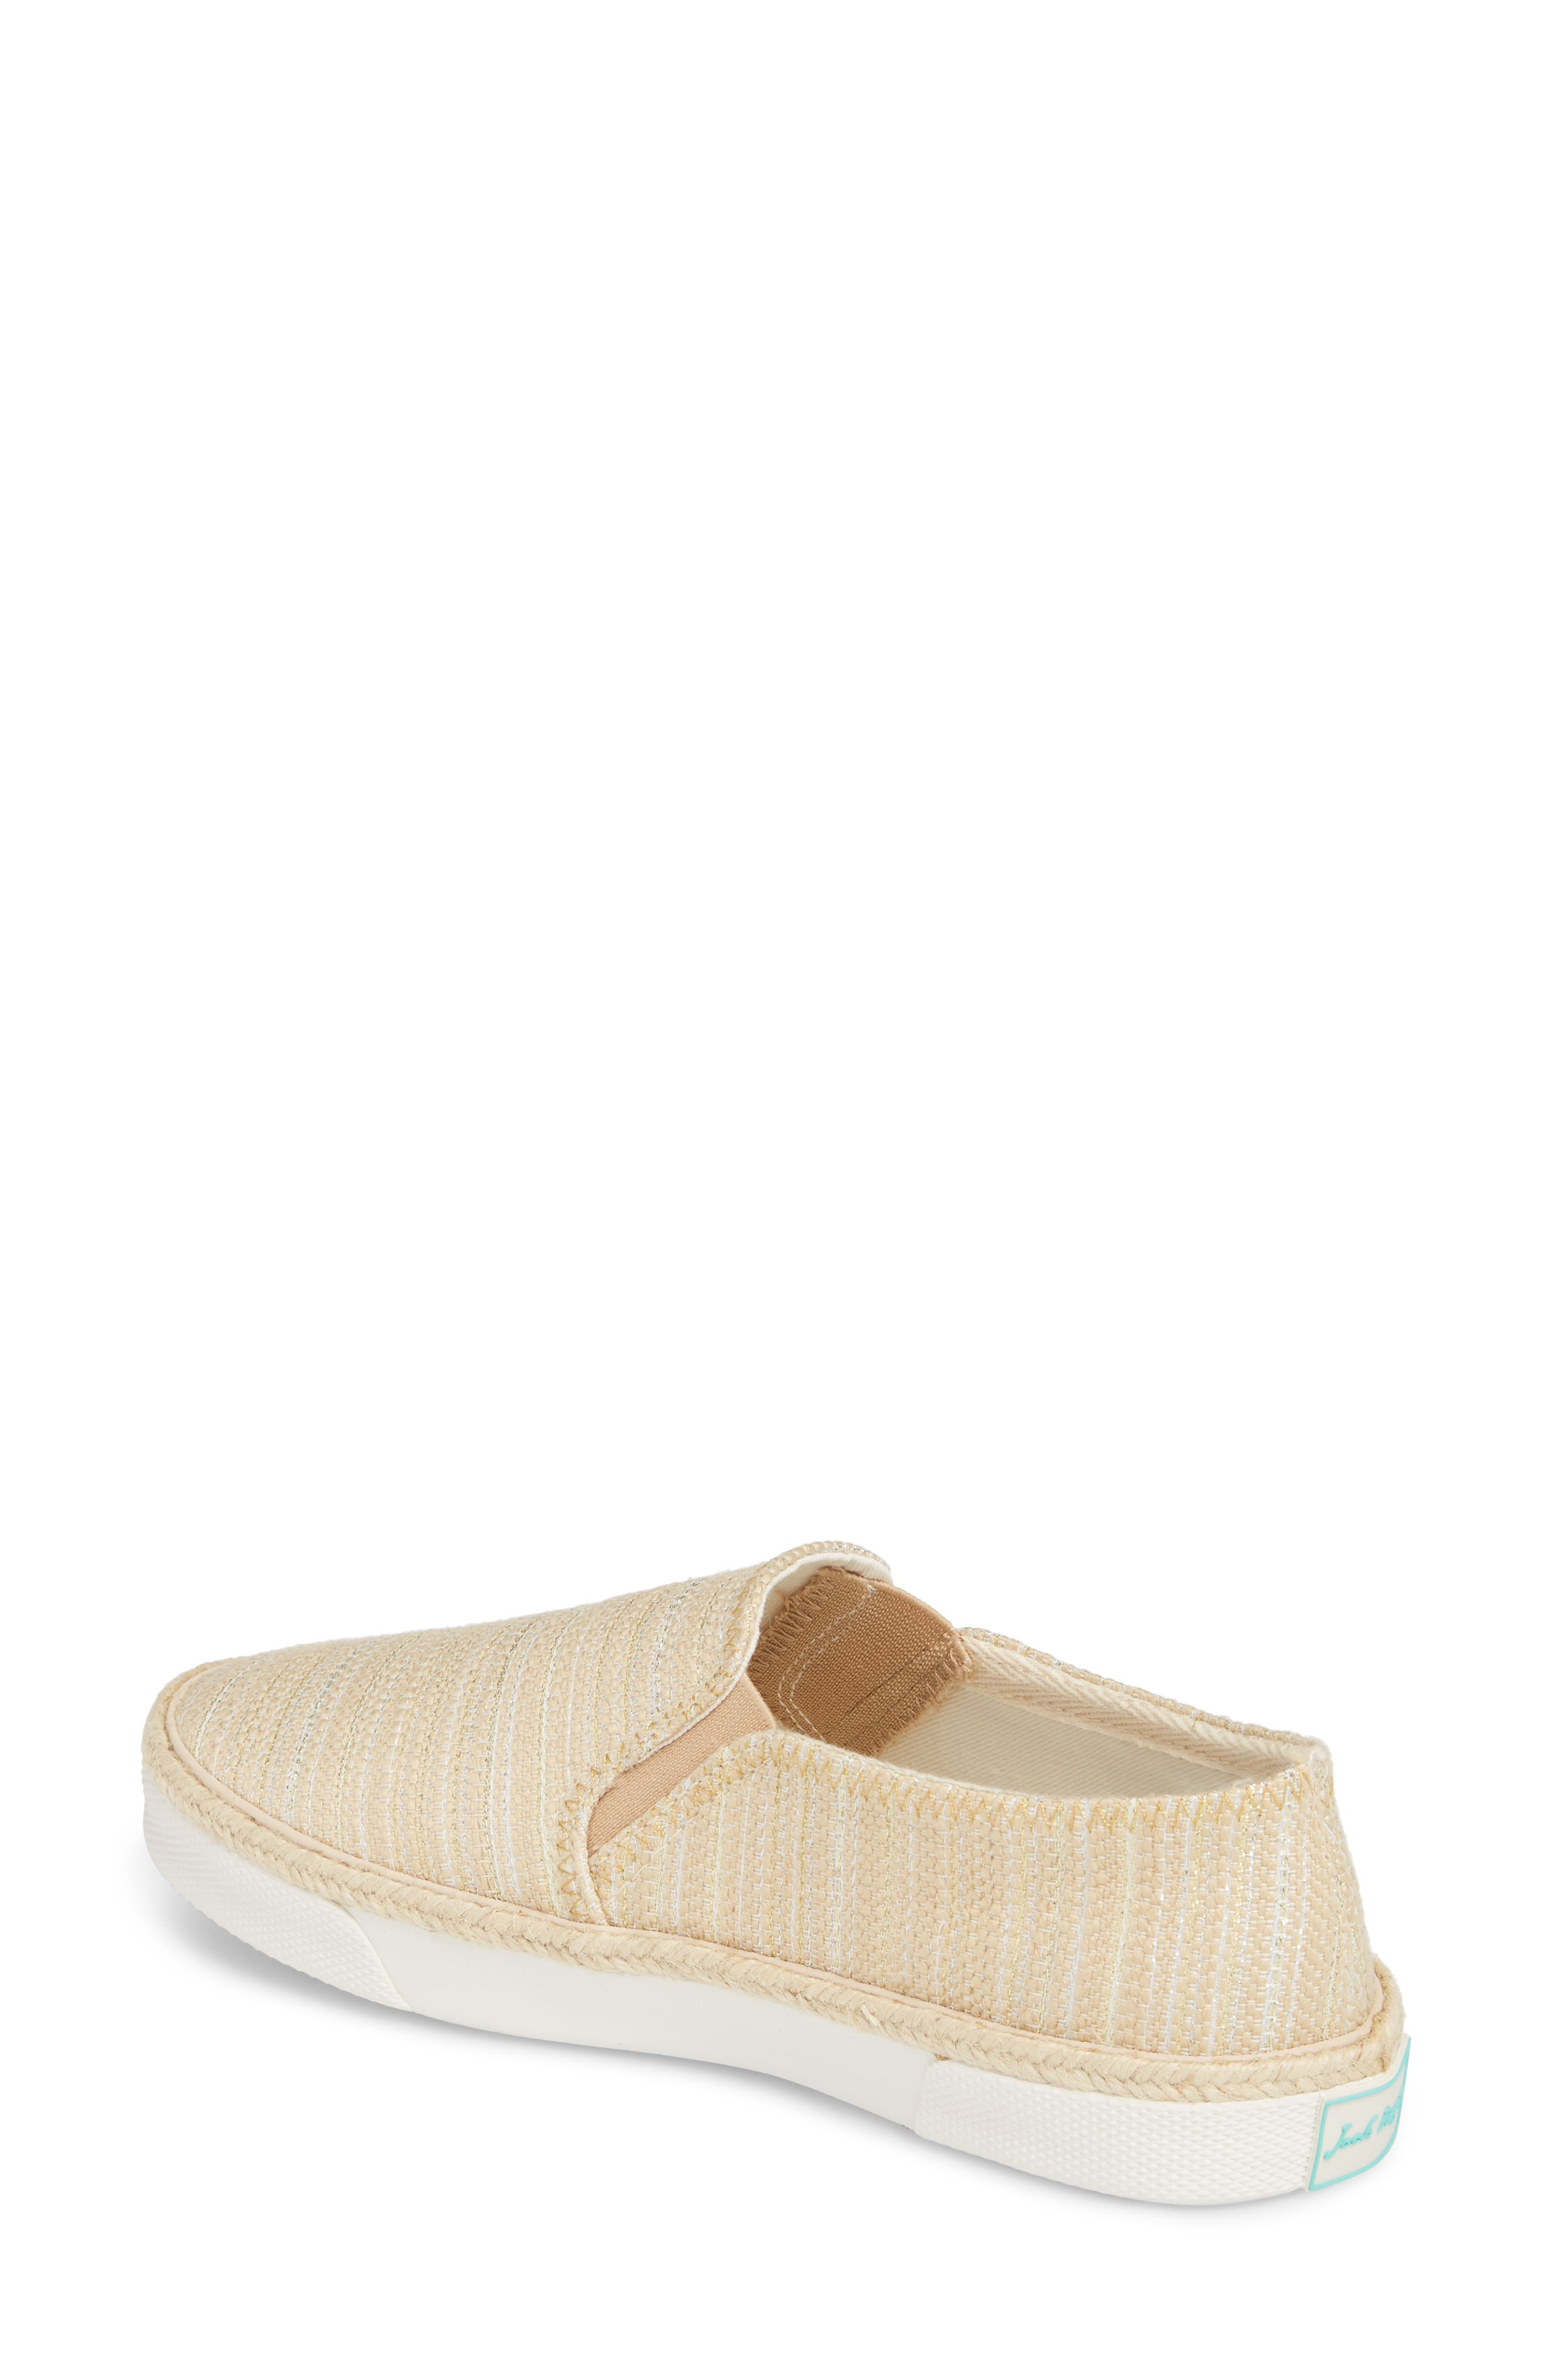 Tucker Slip-On Sneaker,                             Alternate thumbnail 2, color,                             Tan